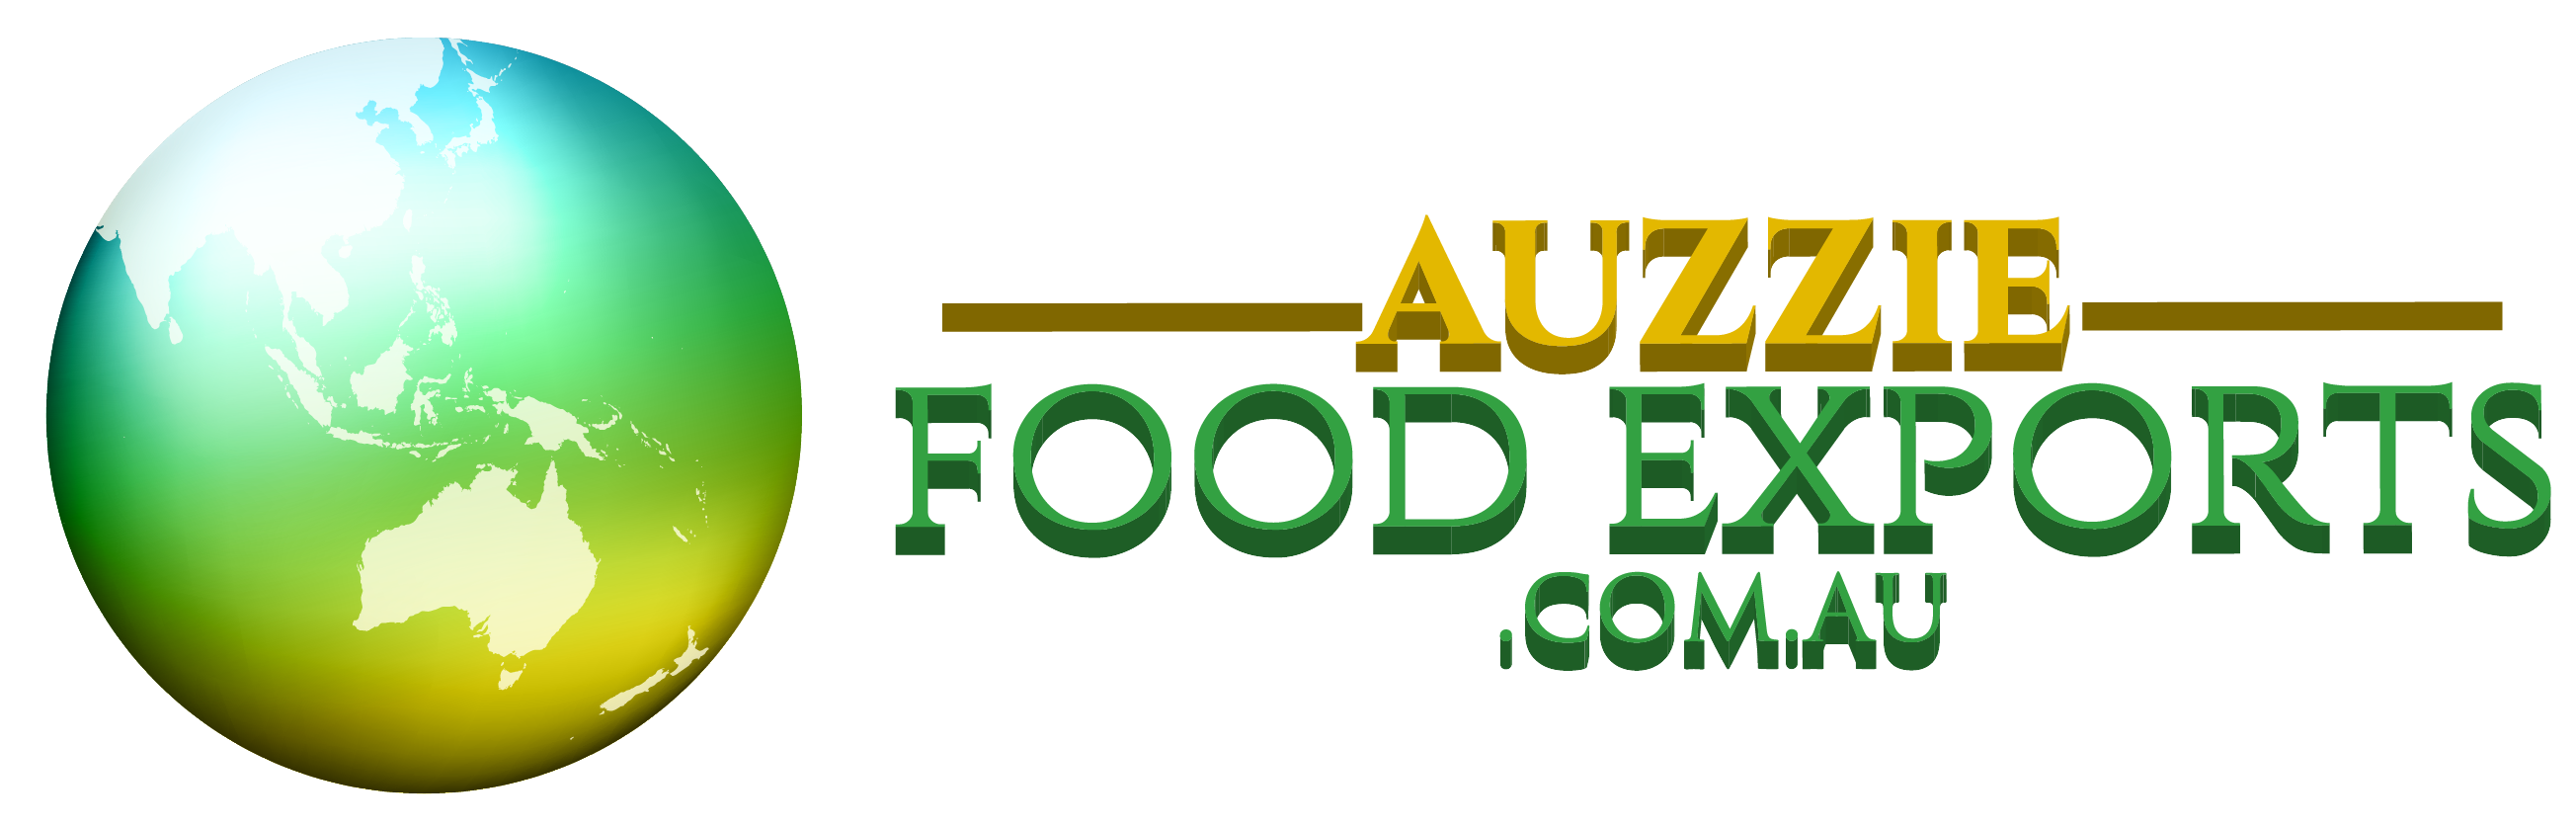 Auzzie Food Exports